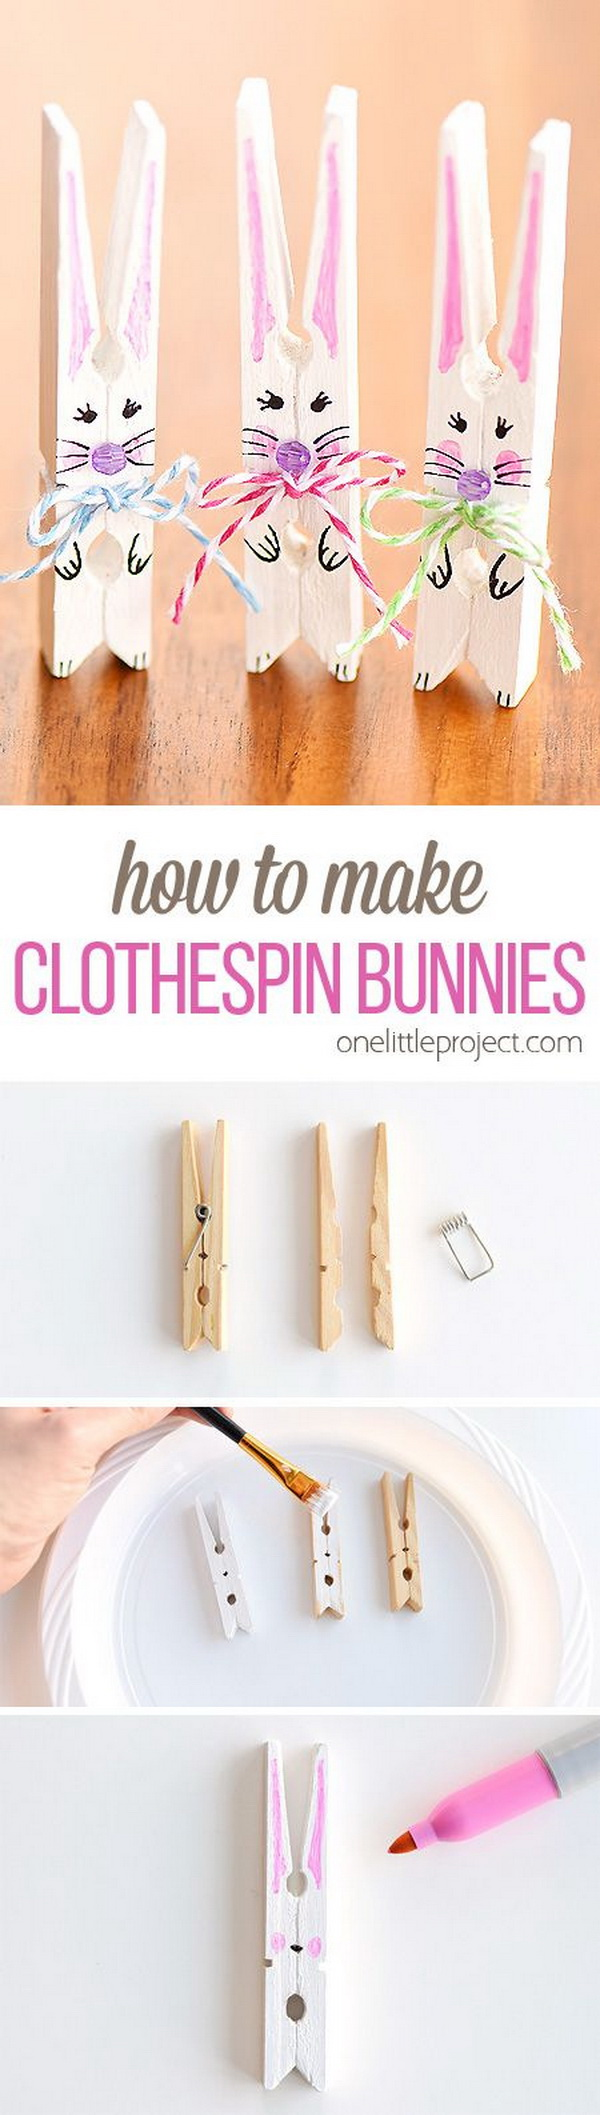 DIY Easter Decoration Ideas: DIY Clothespin Bunnies.